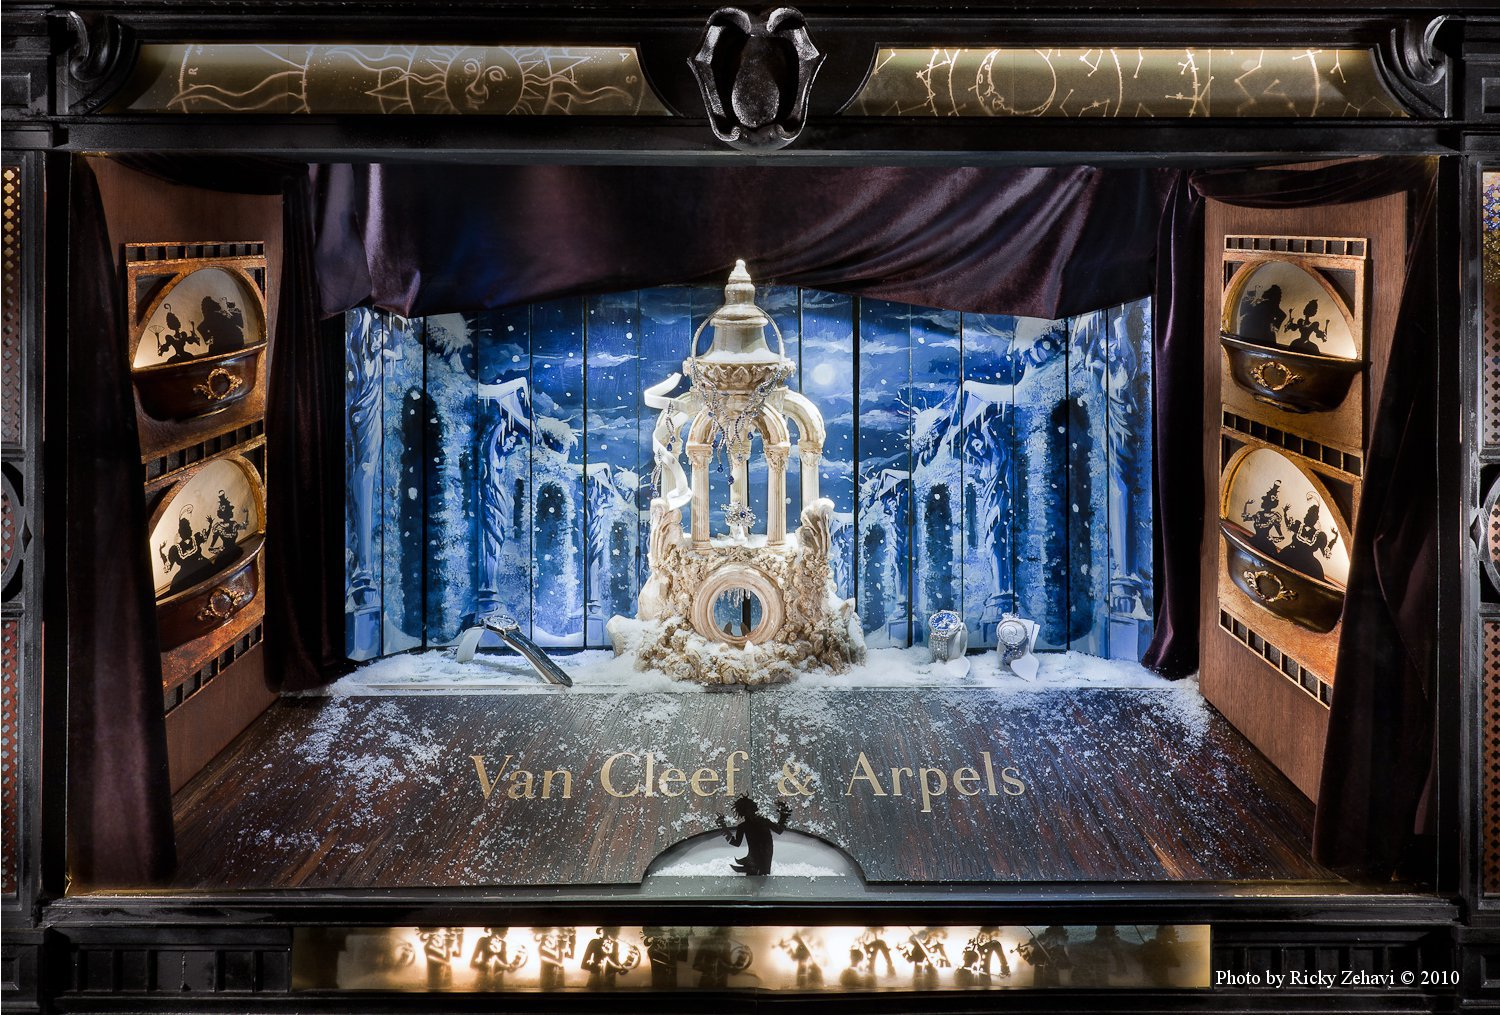 Van Cliff & Arpels has a special winter window display which is looking like a scene from the theatre with a picture in the background showing iced nature.